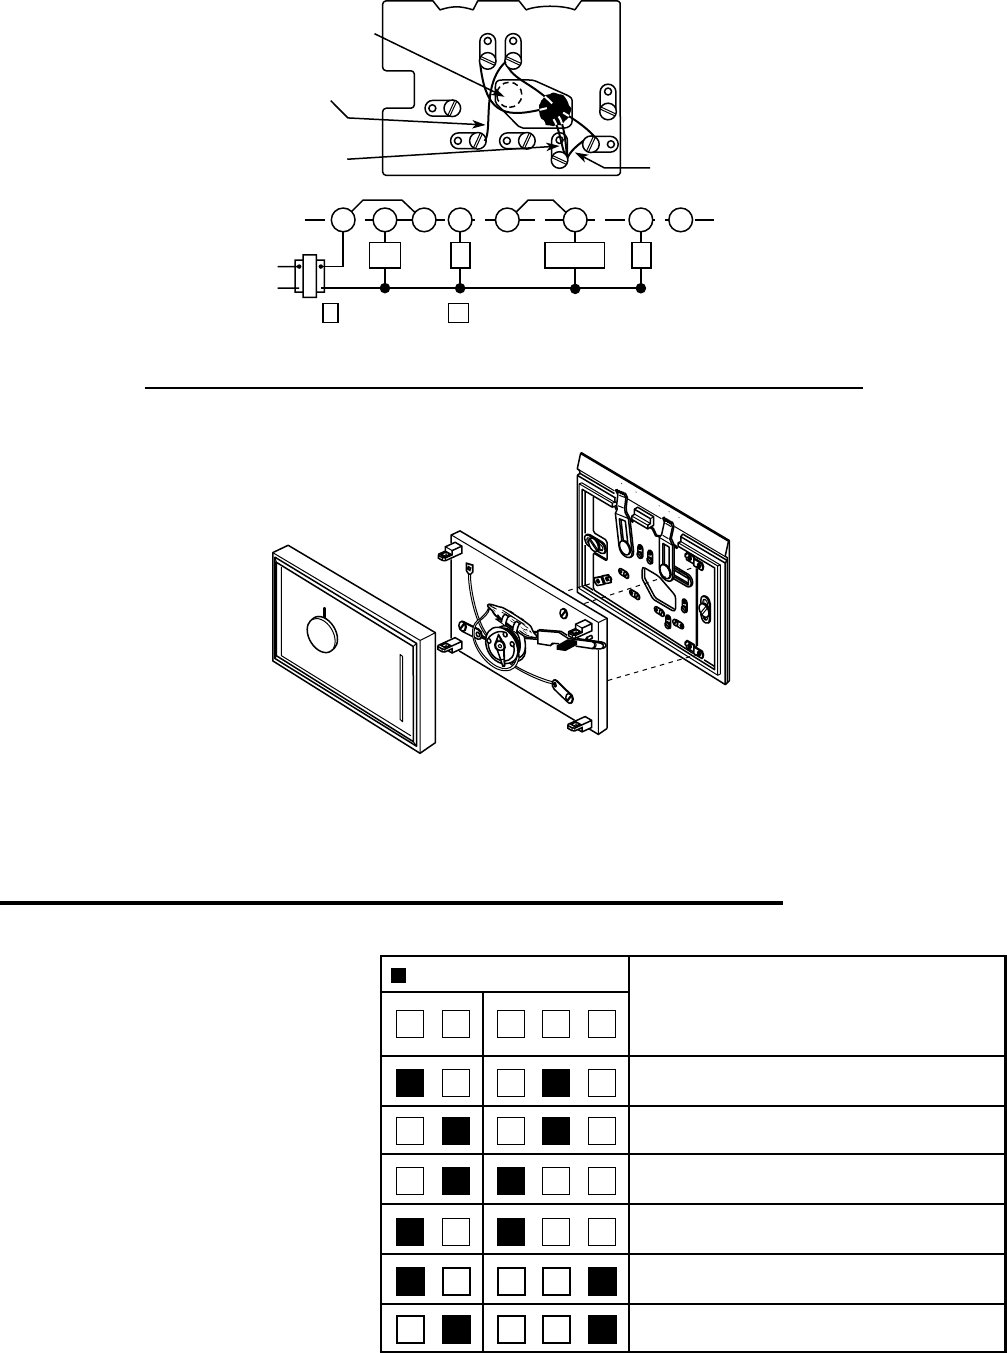 white rodgers thermostat wiring diagram 1f89 211